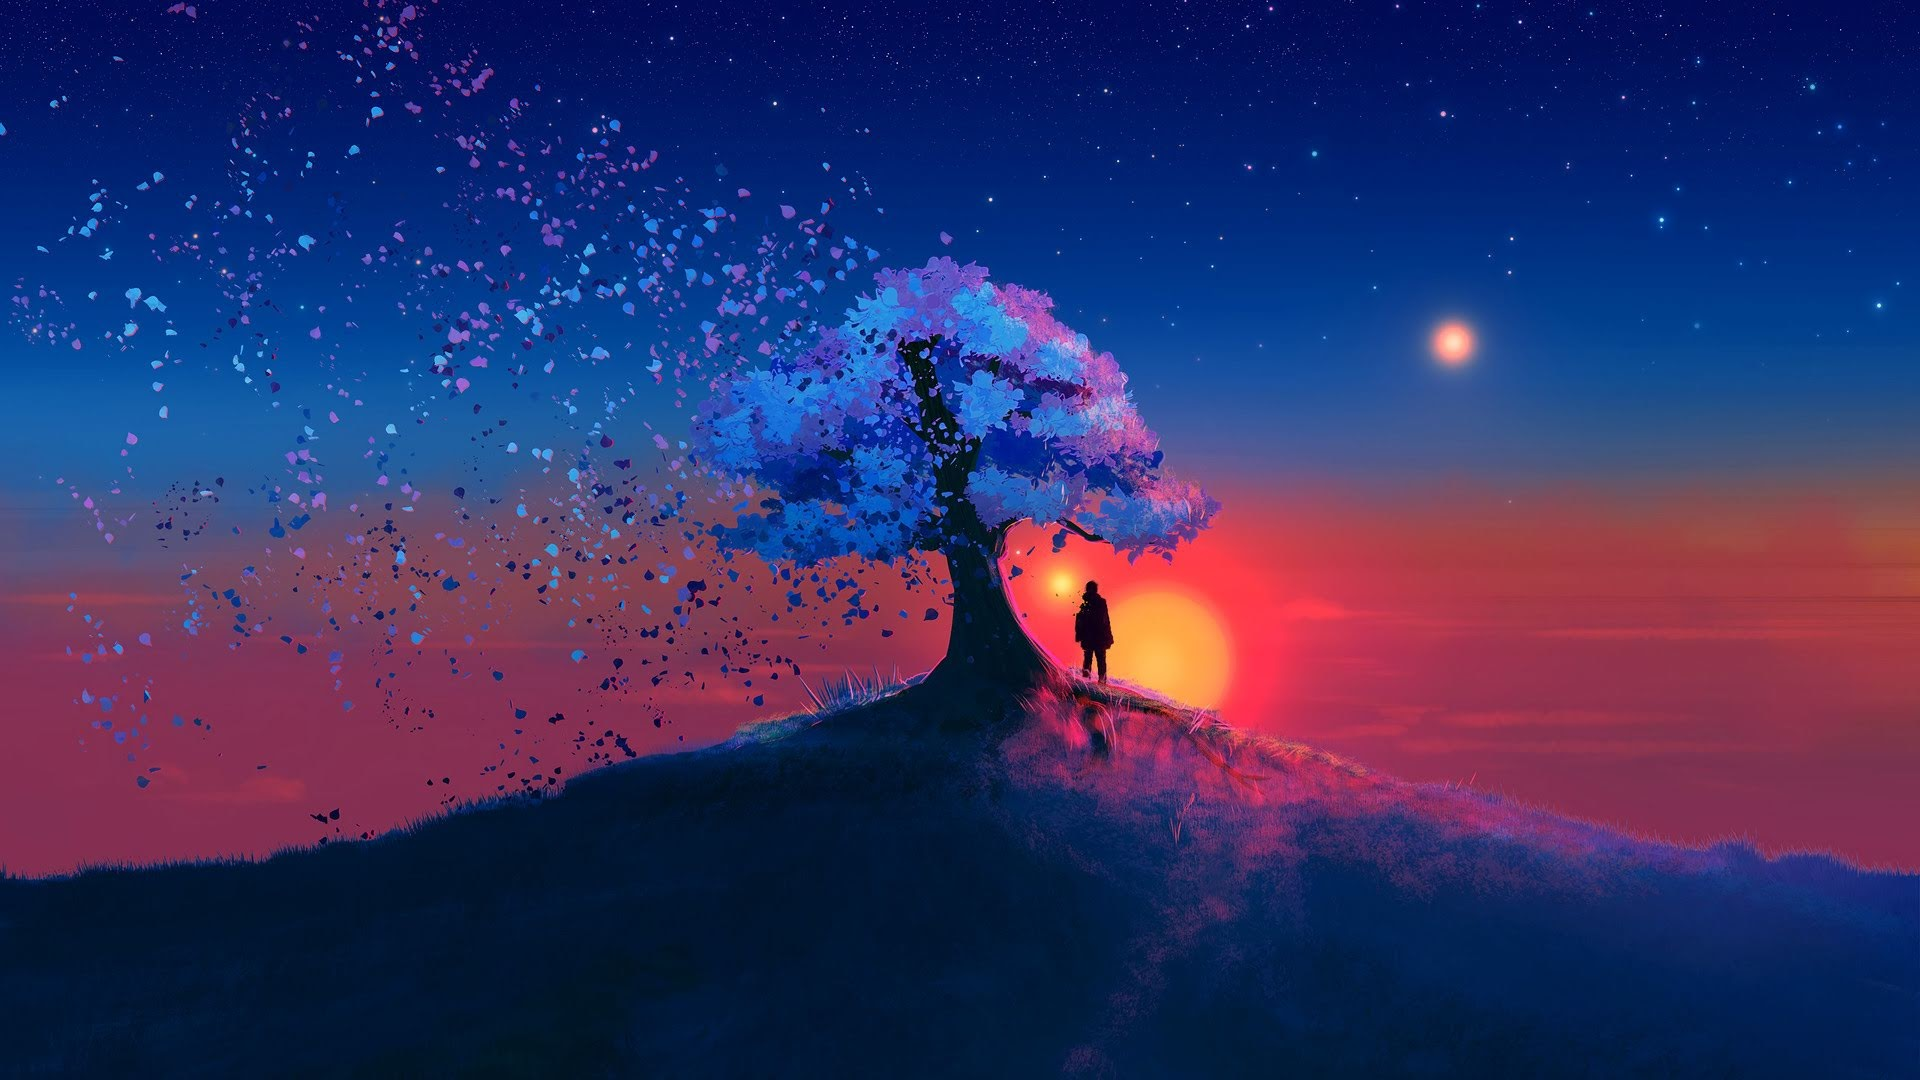 Boy Standing Under Tree At Sunset Hd Wallpaper Background Image 1920x1080 Id 1069102 Wallpaper Abyss